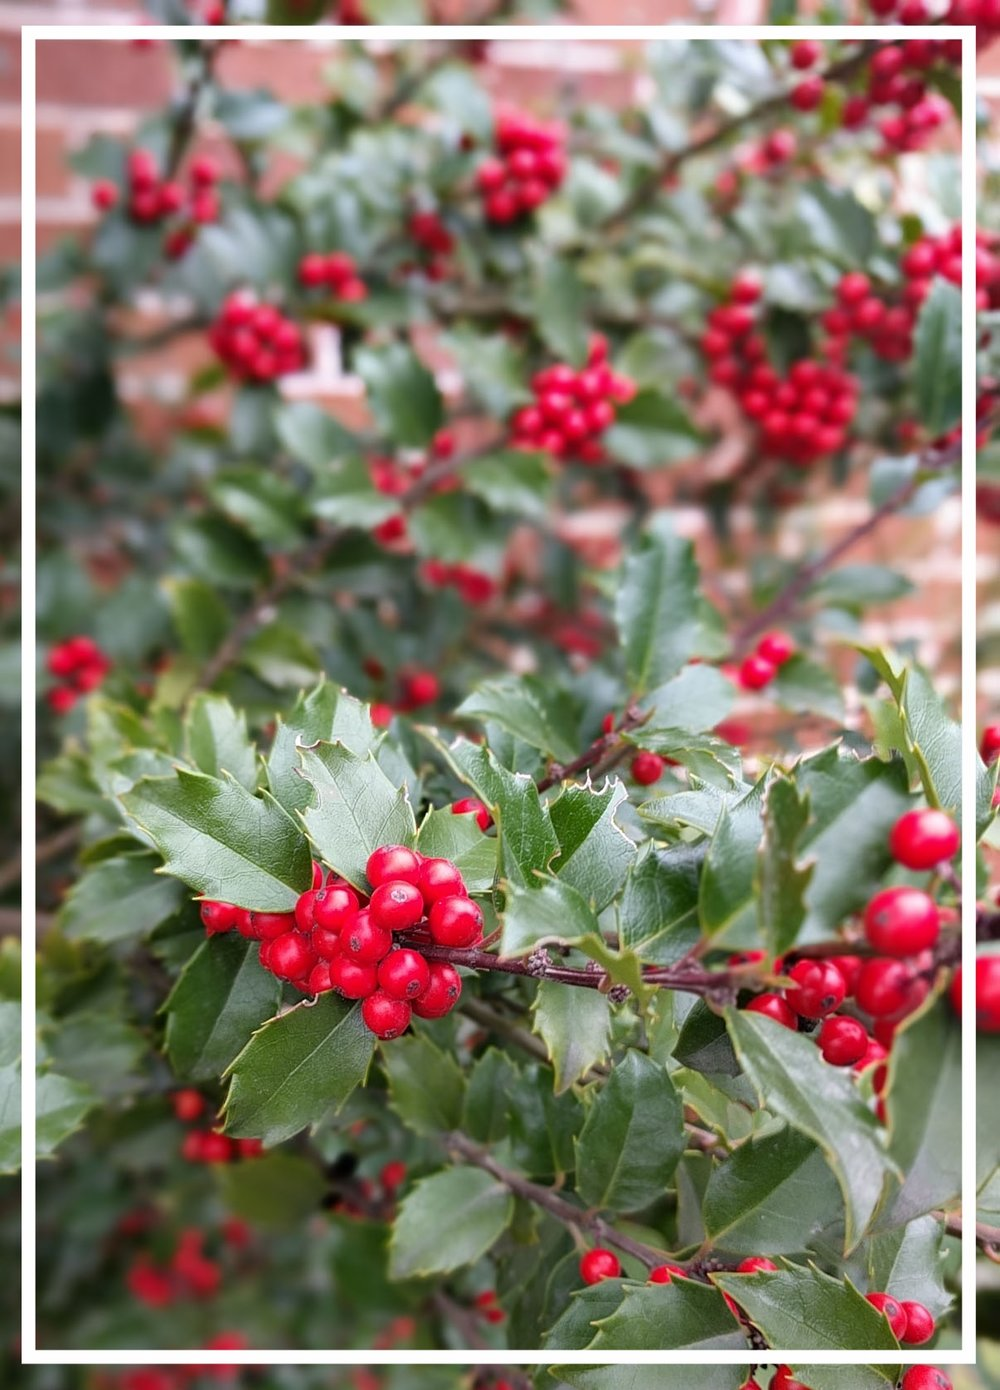 Glossy evergreen leaves and red berries make this holly a winter showpiece.